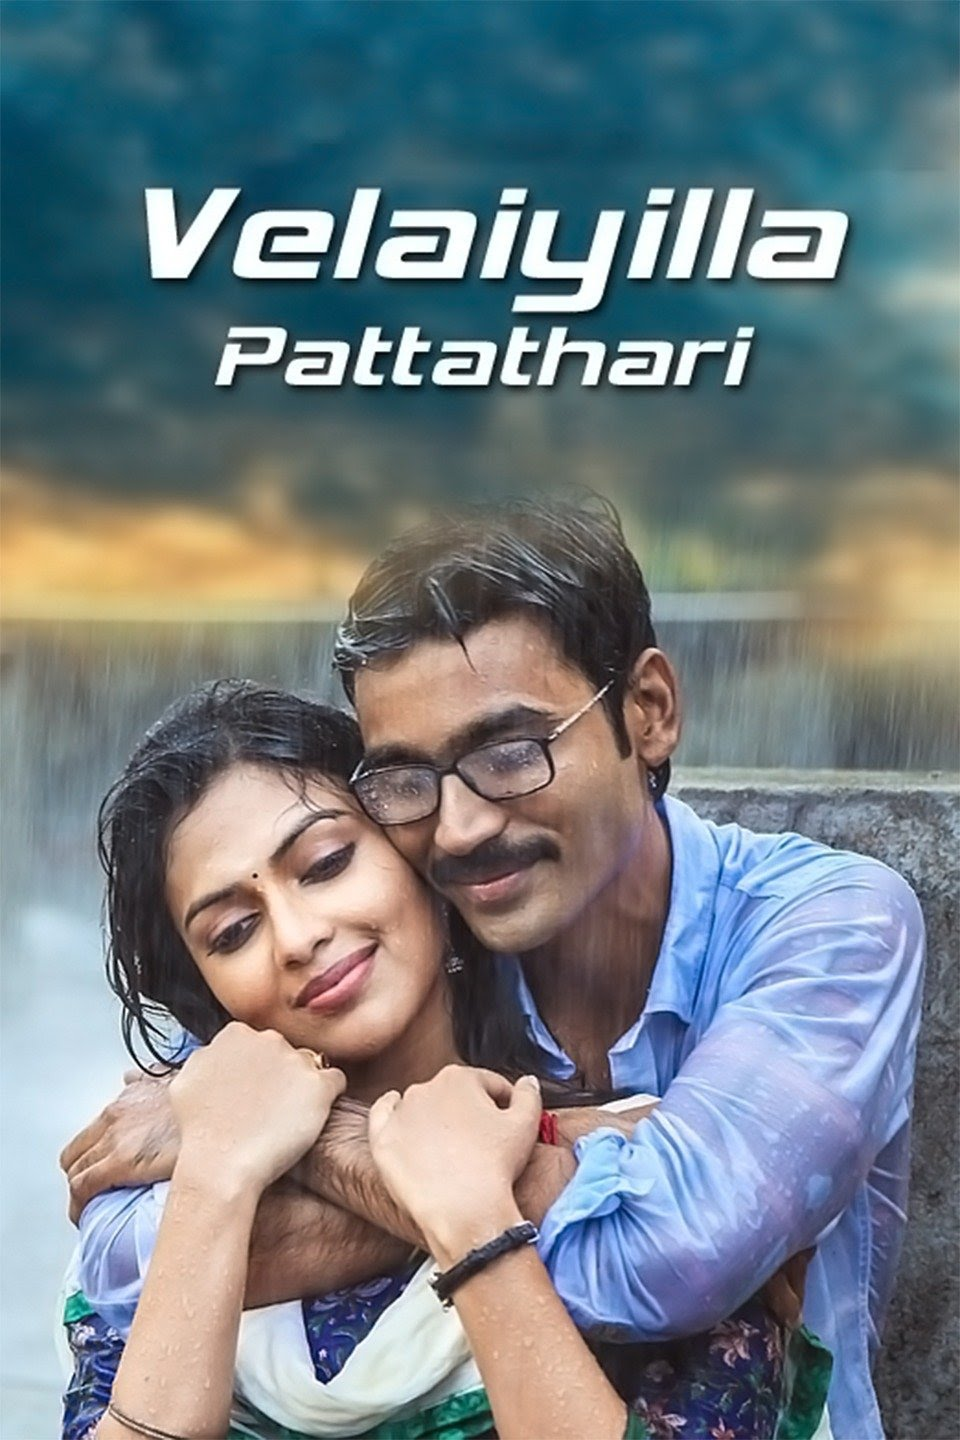 Velaiyilla Pattathari (VIP) 2014 Hindi Dual Audio 720p UNCUT HDRip 1.4GB Download